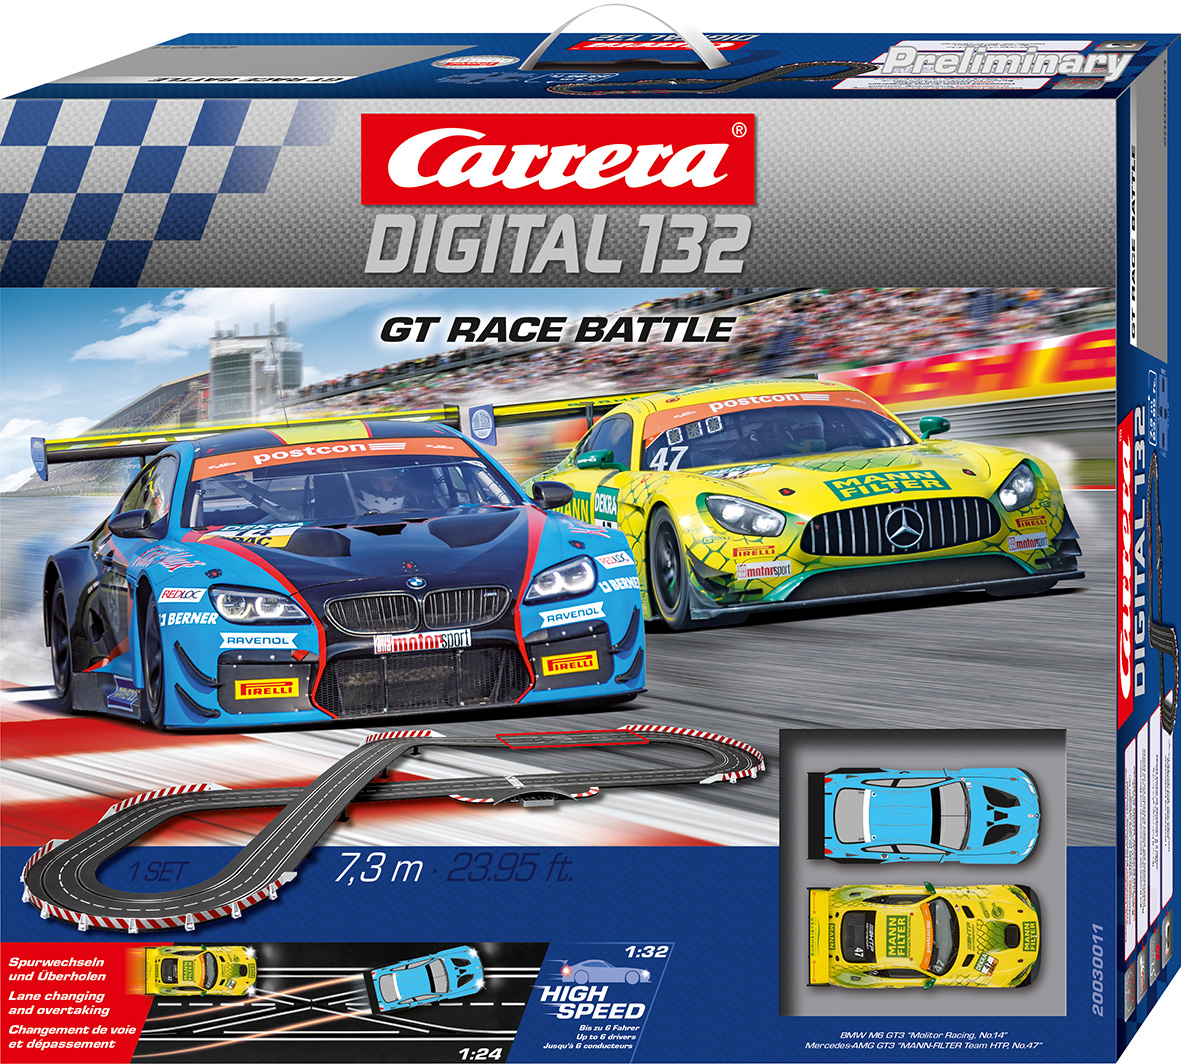 30011 Carrera Digital 132 GT Race Battle